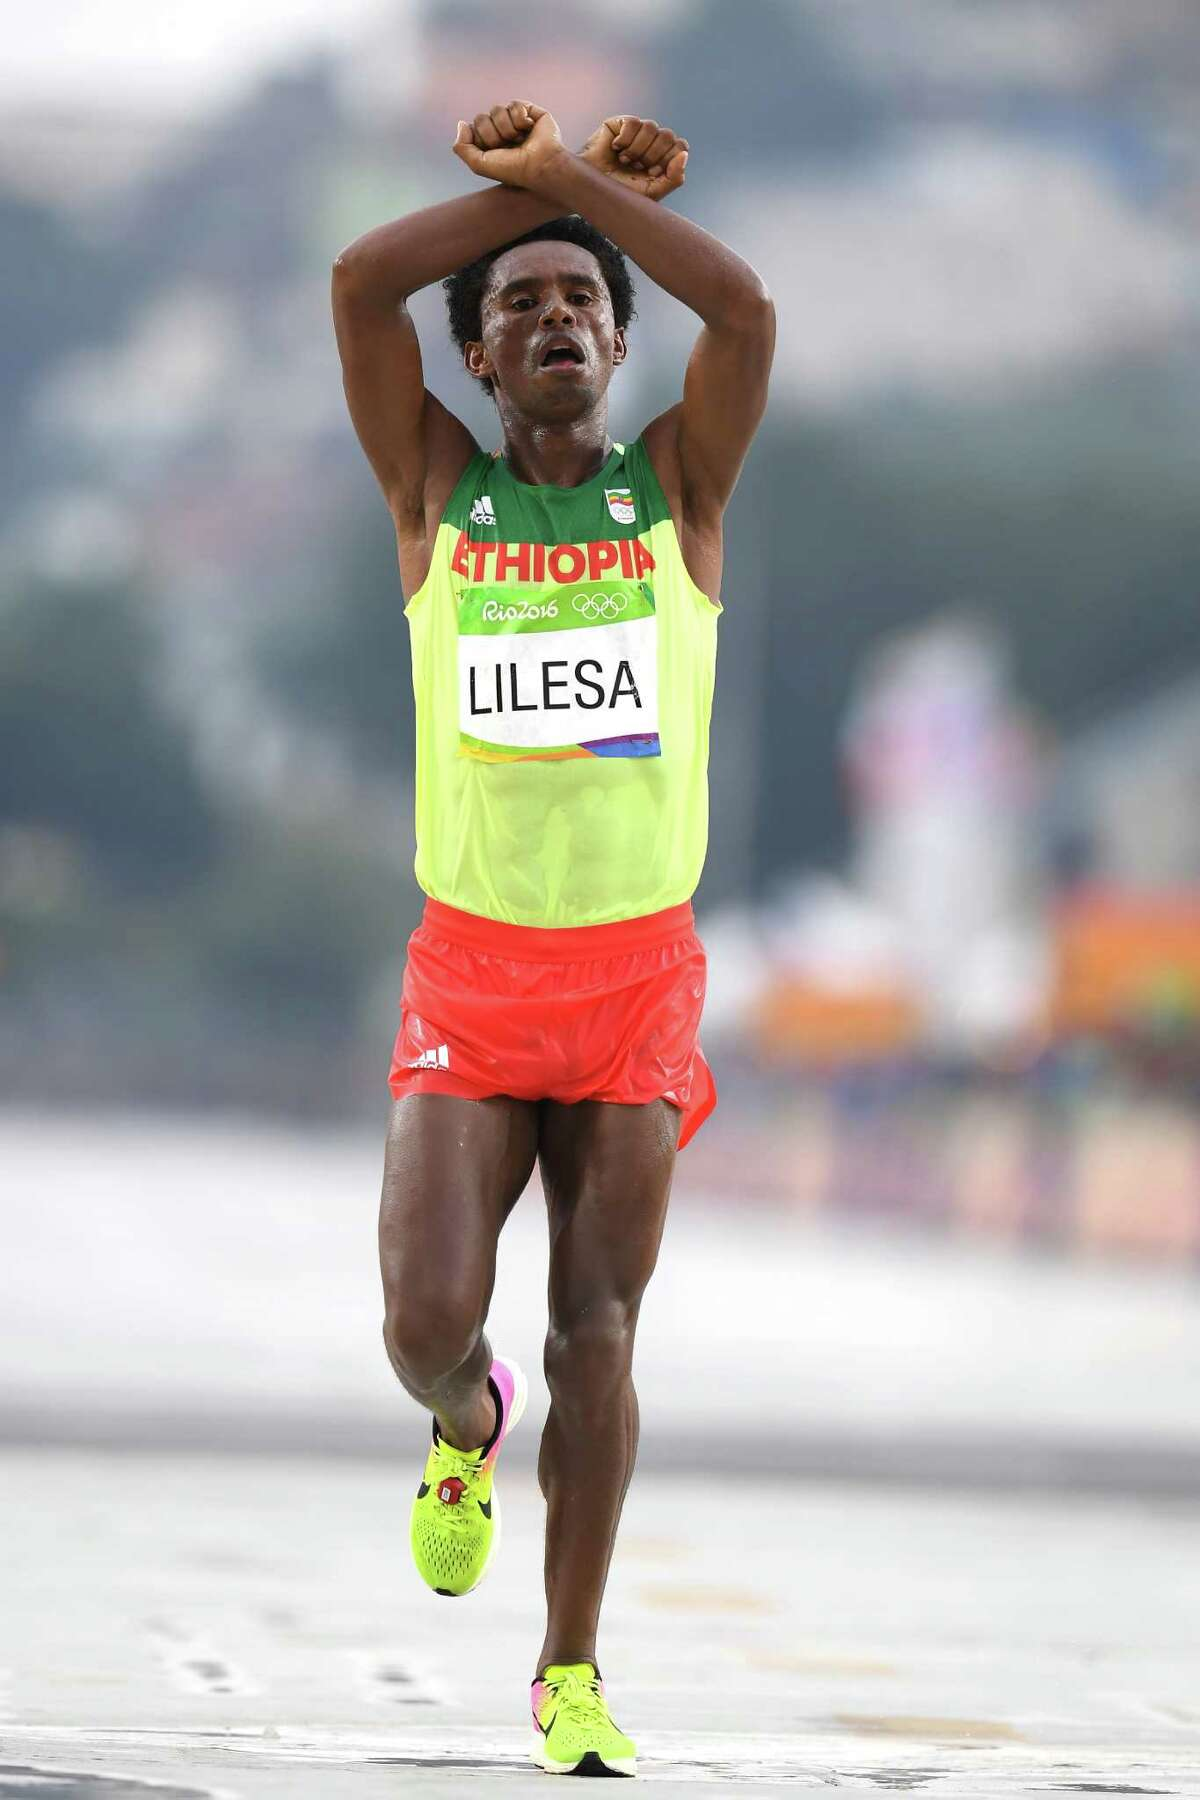 It was this sign while winning silver in the marathon at the Rio Olympics that got Feyisa Lilesa in hot water with the Ethiopian government.